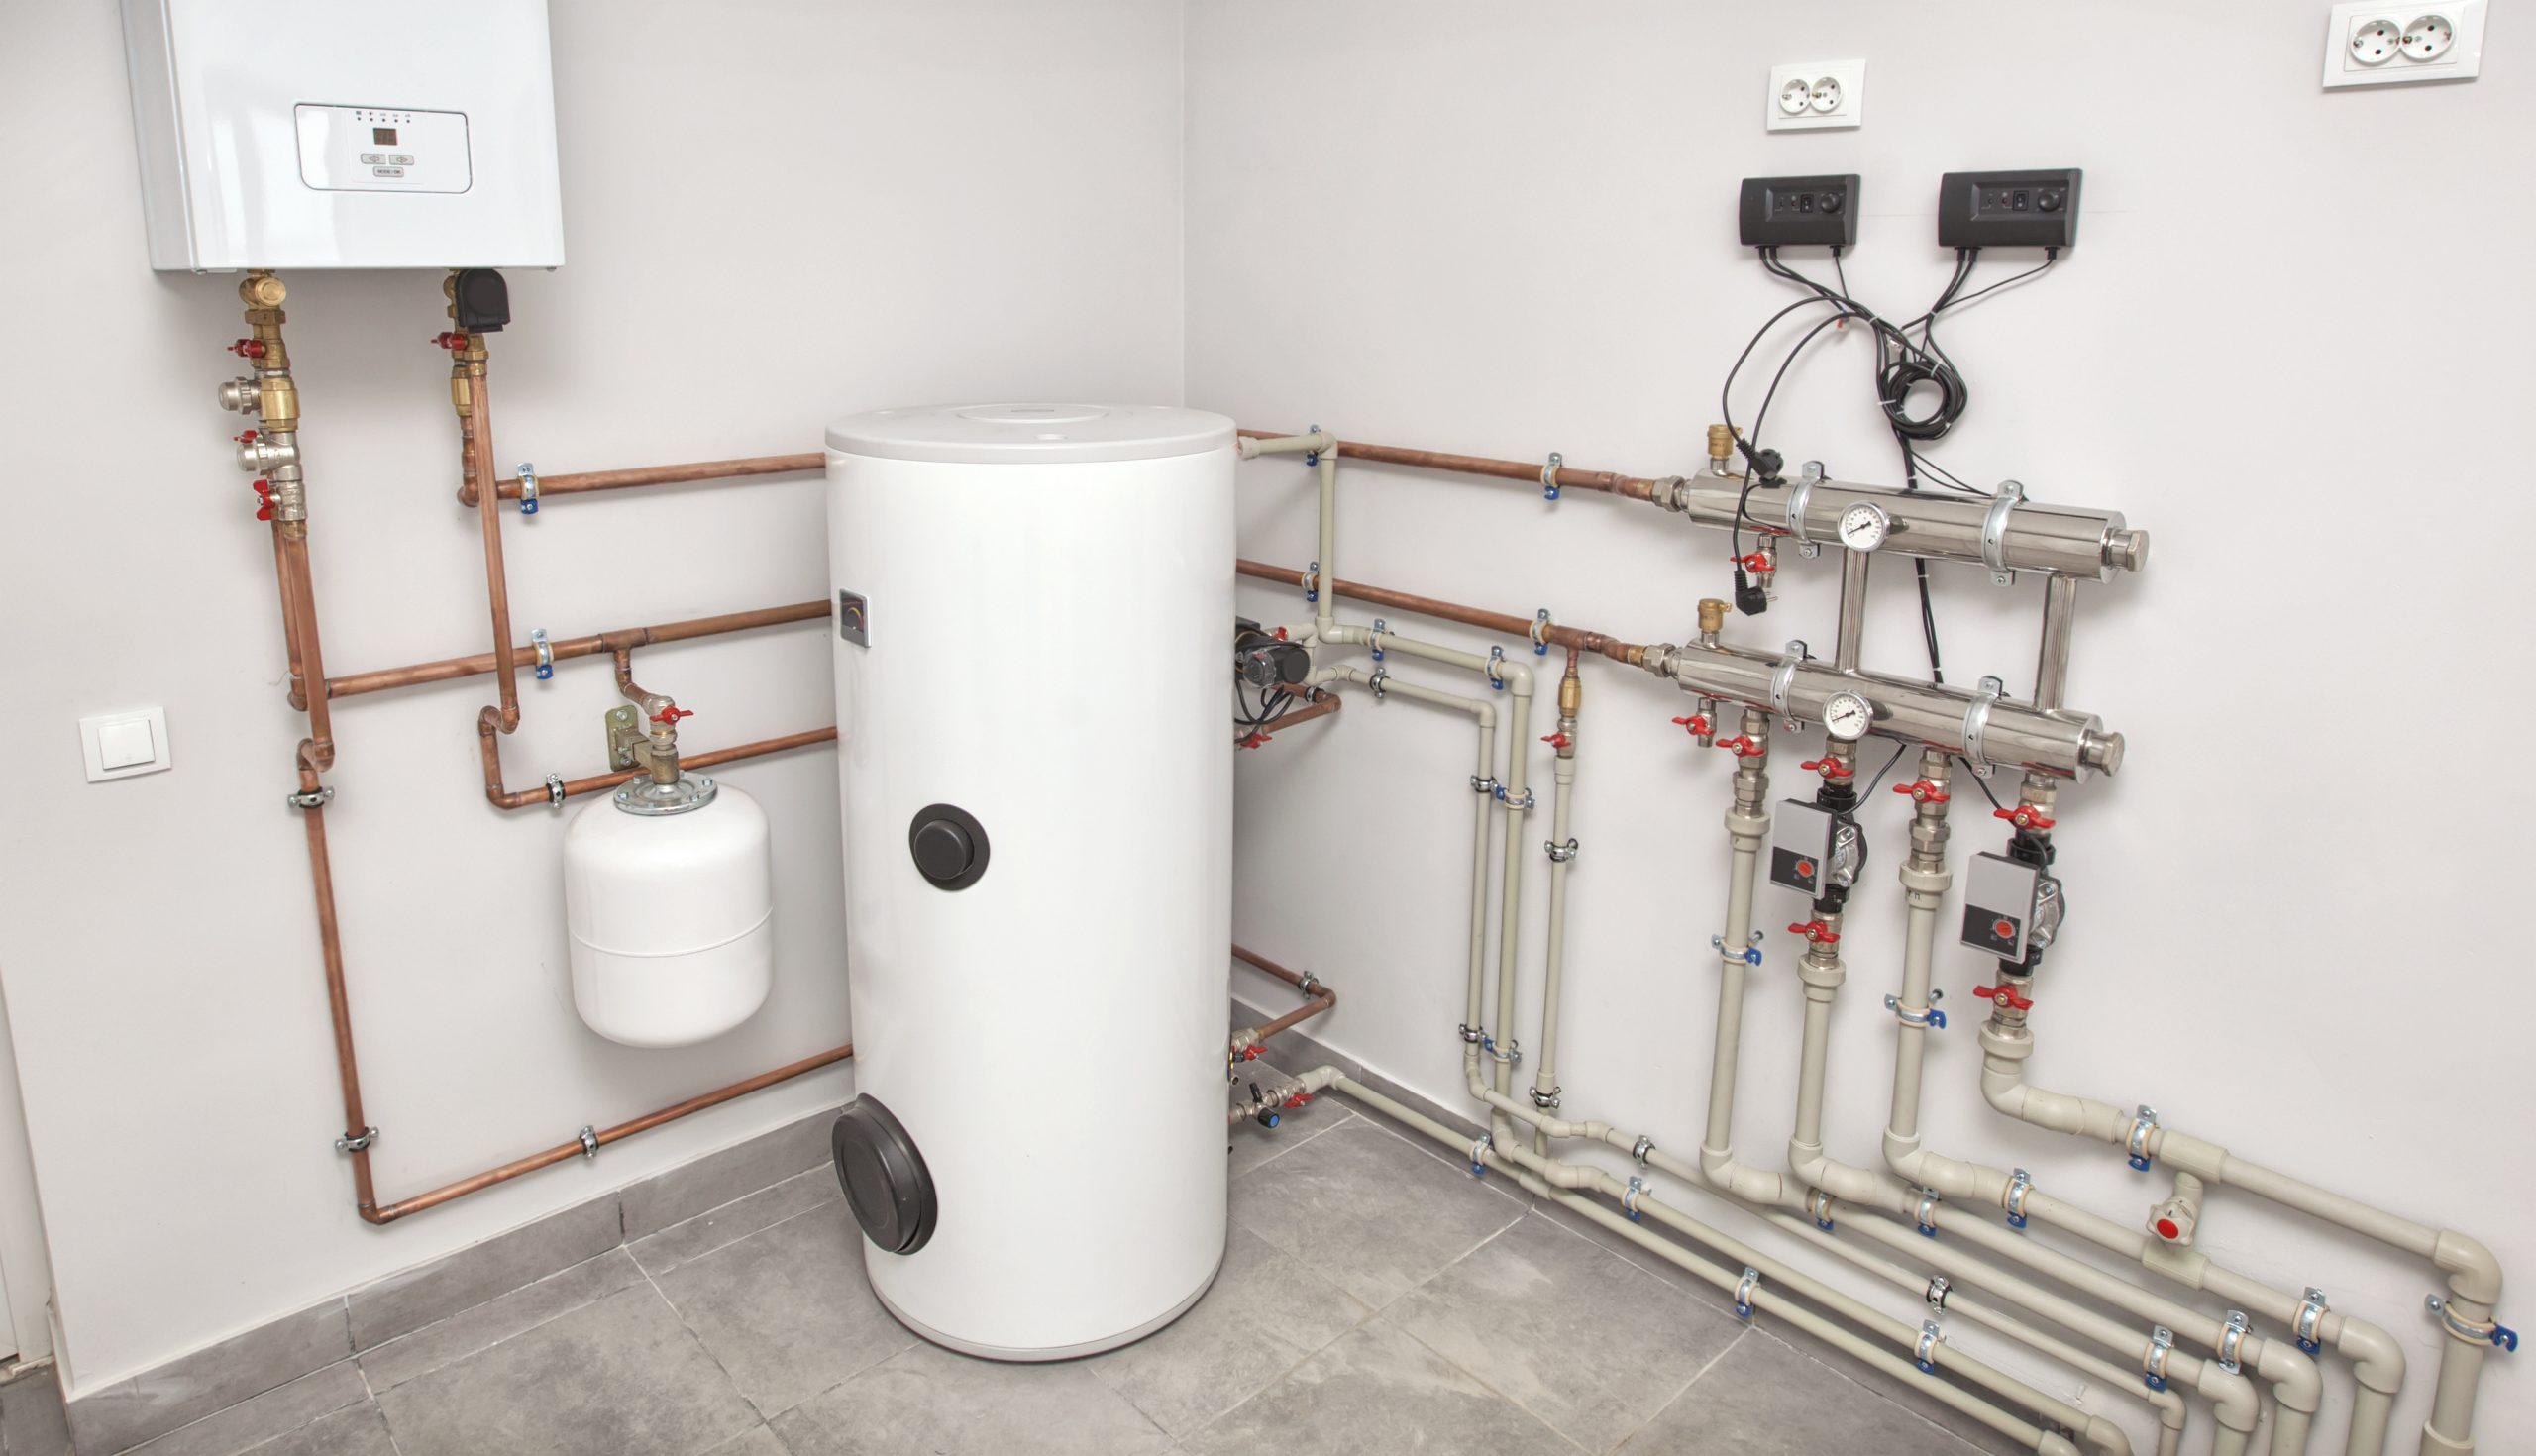 Gas Boiller with water tank and pipes